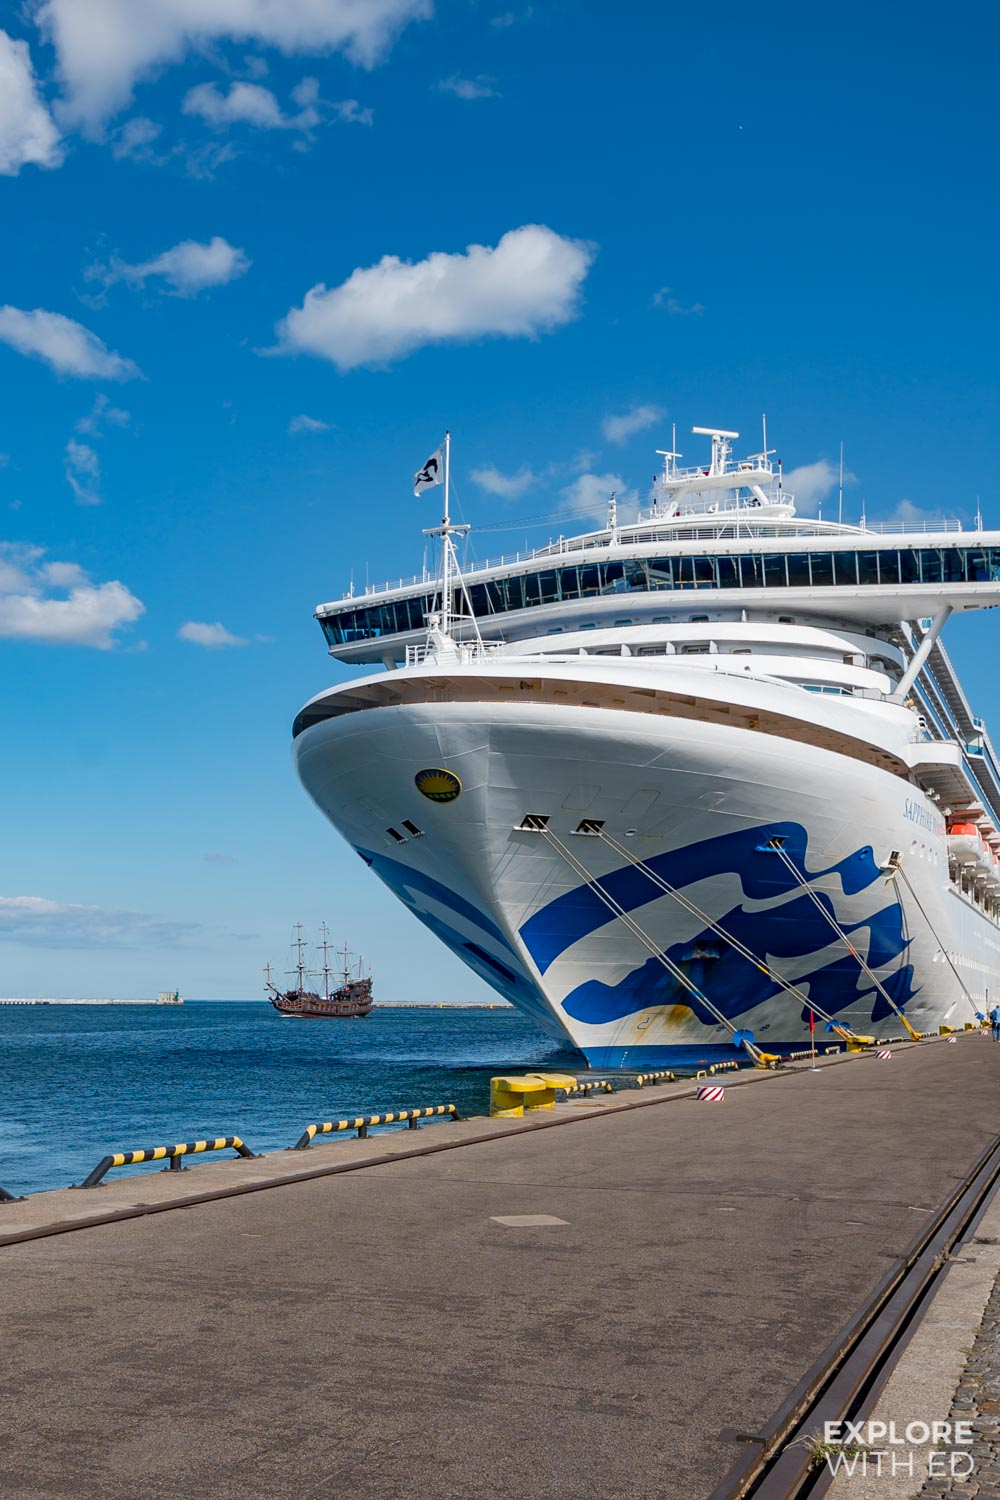 Cruise ship docked in Gdynia, Poland